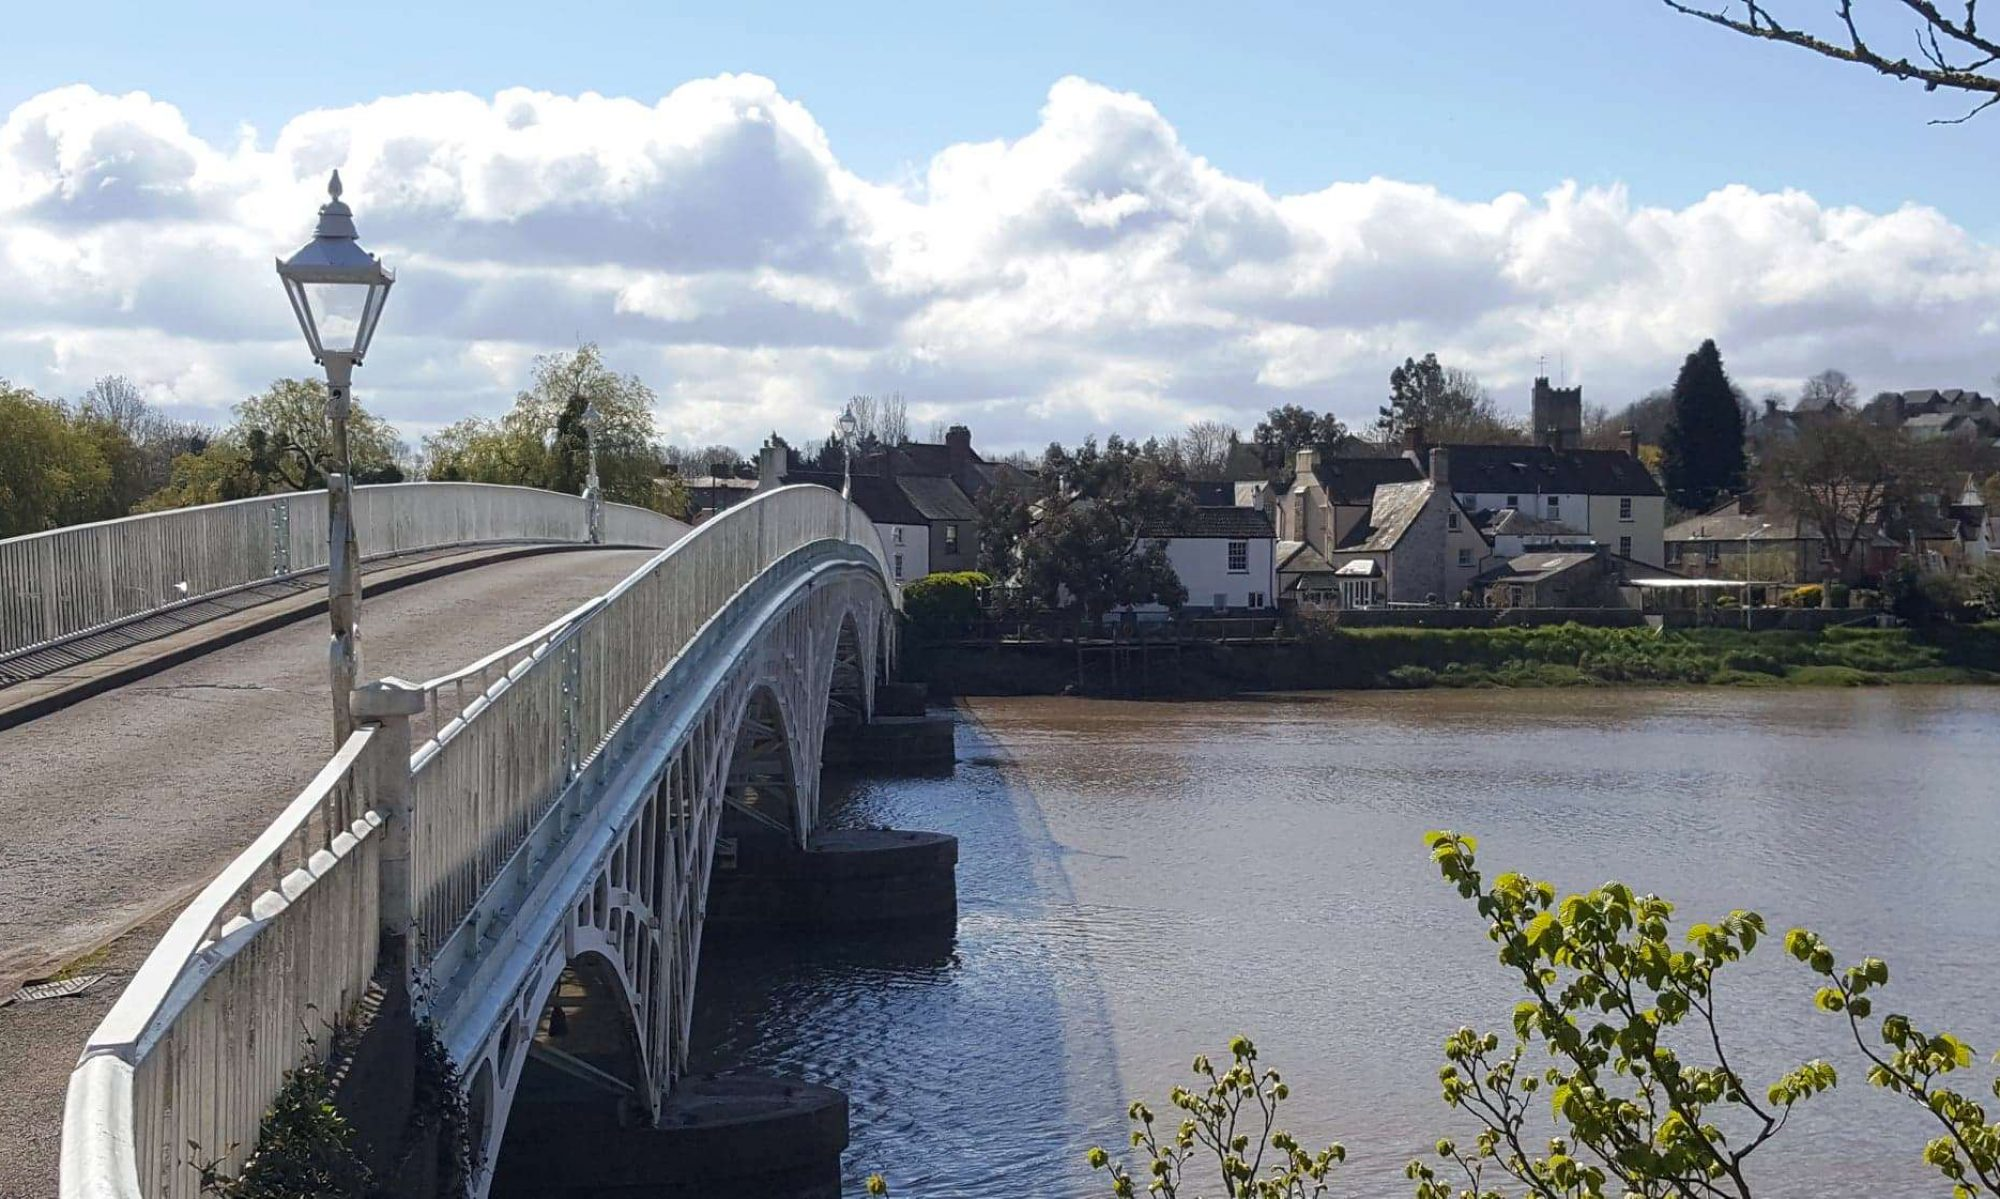 The Chepstow Society